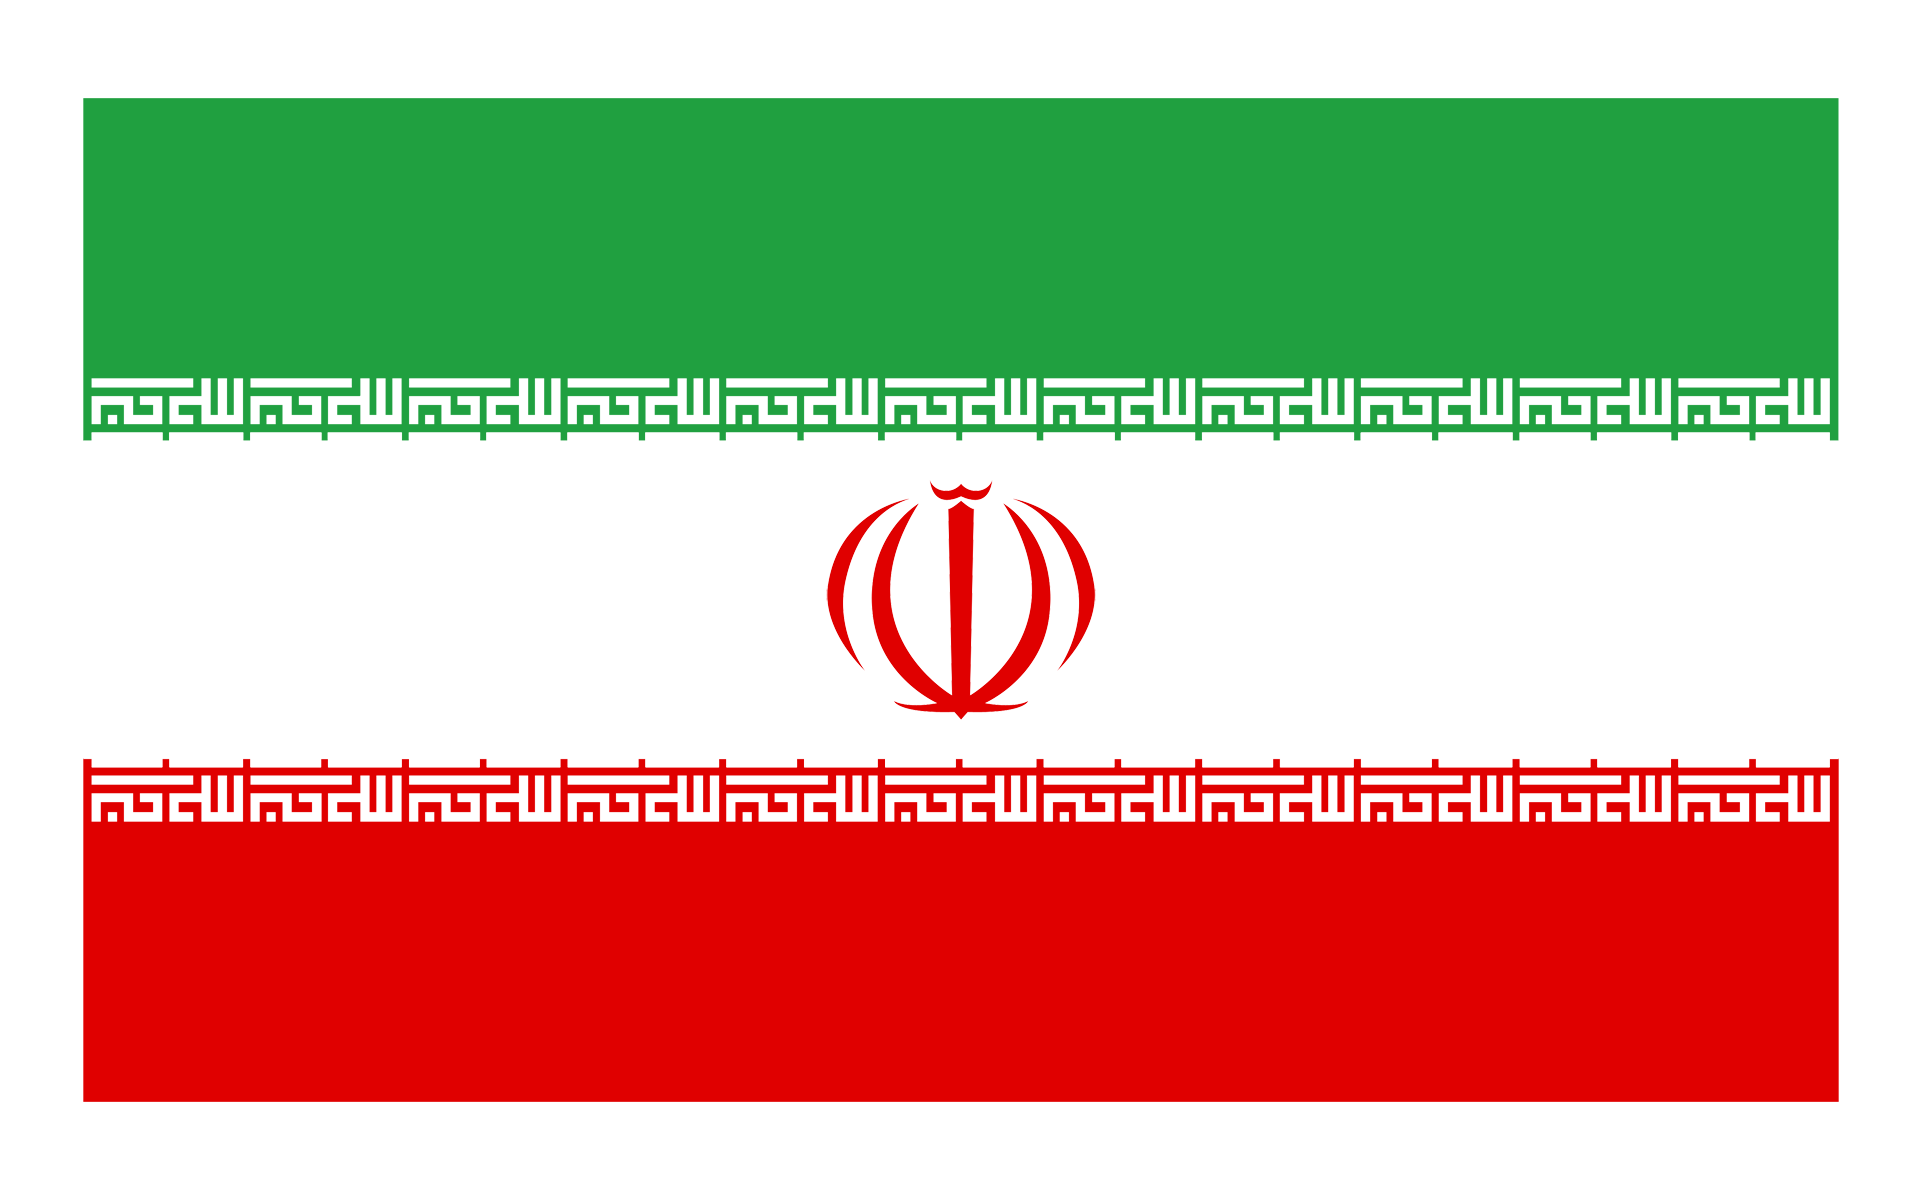 Iran Persian Countries And Flags Flags Of The World Symbols